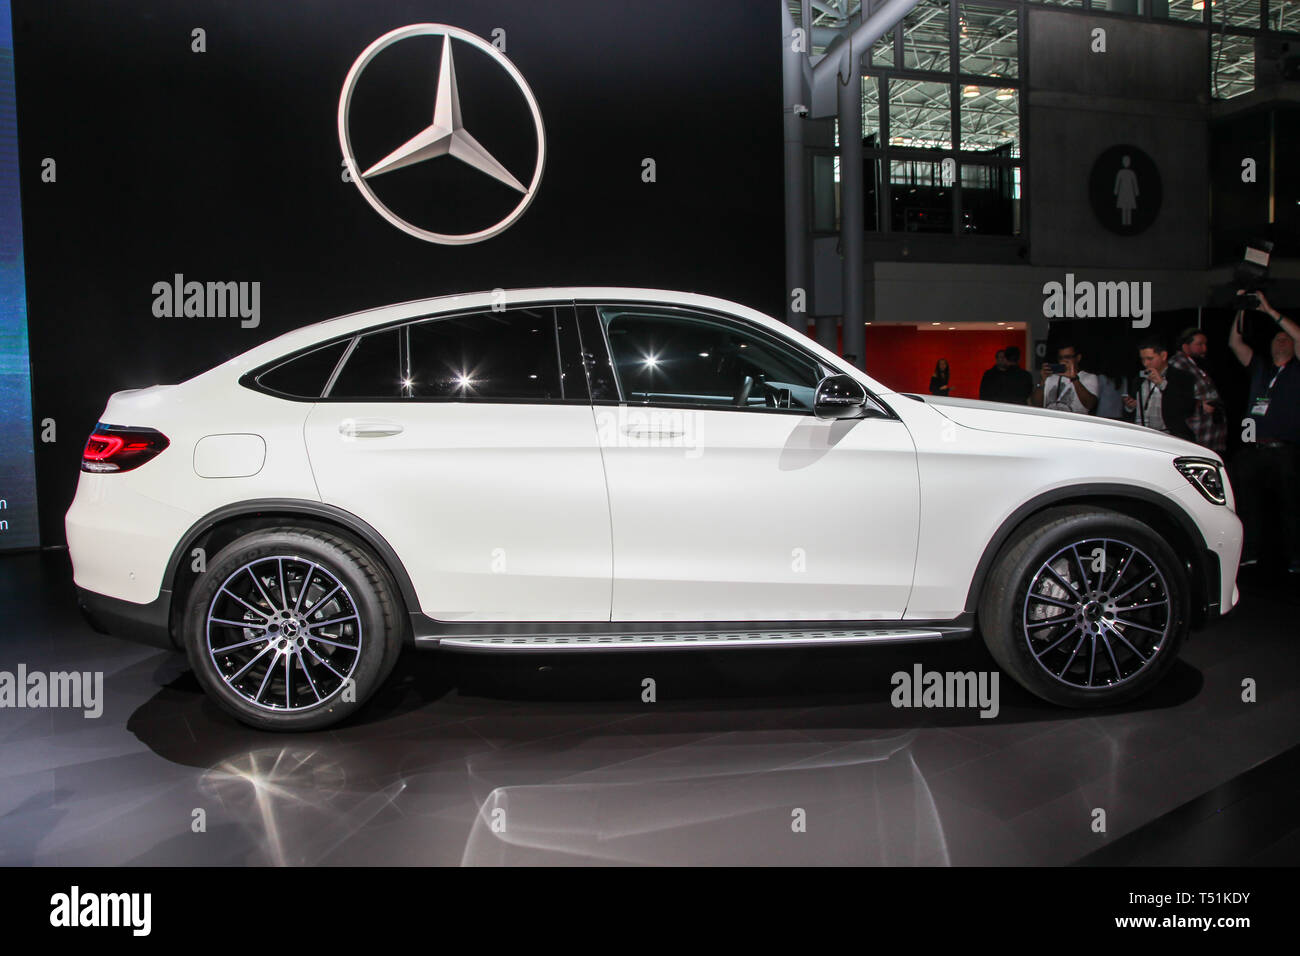 Mercedes-Benz GLC 300 Coupe shown at the New York International Auto Show 2019, at the Jacob Javits Center. This was Press Preview Day One of NYIAS - Stock Image